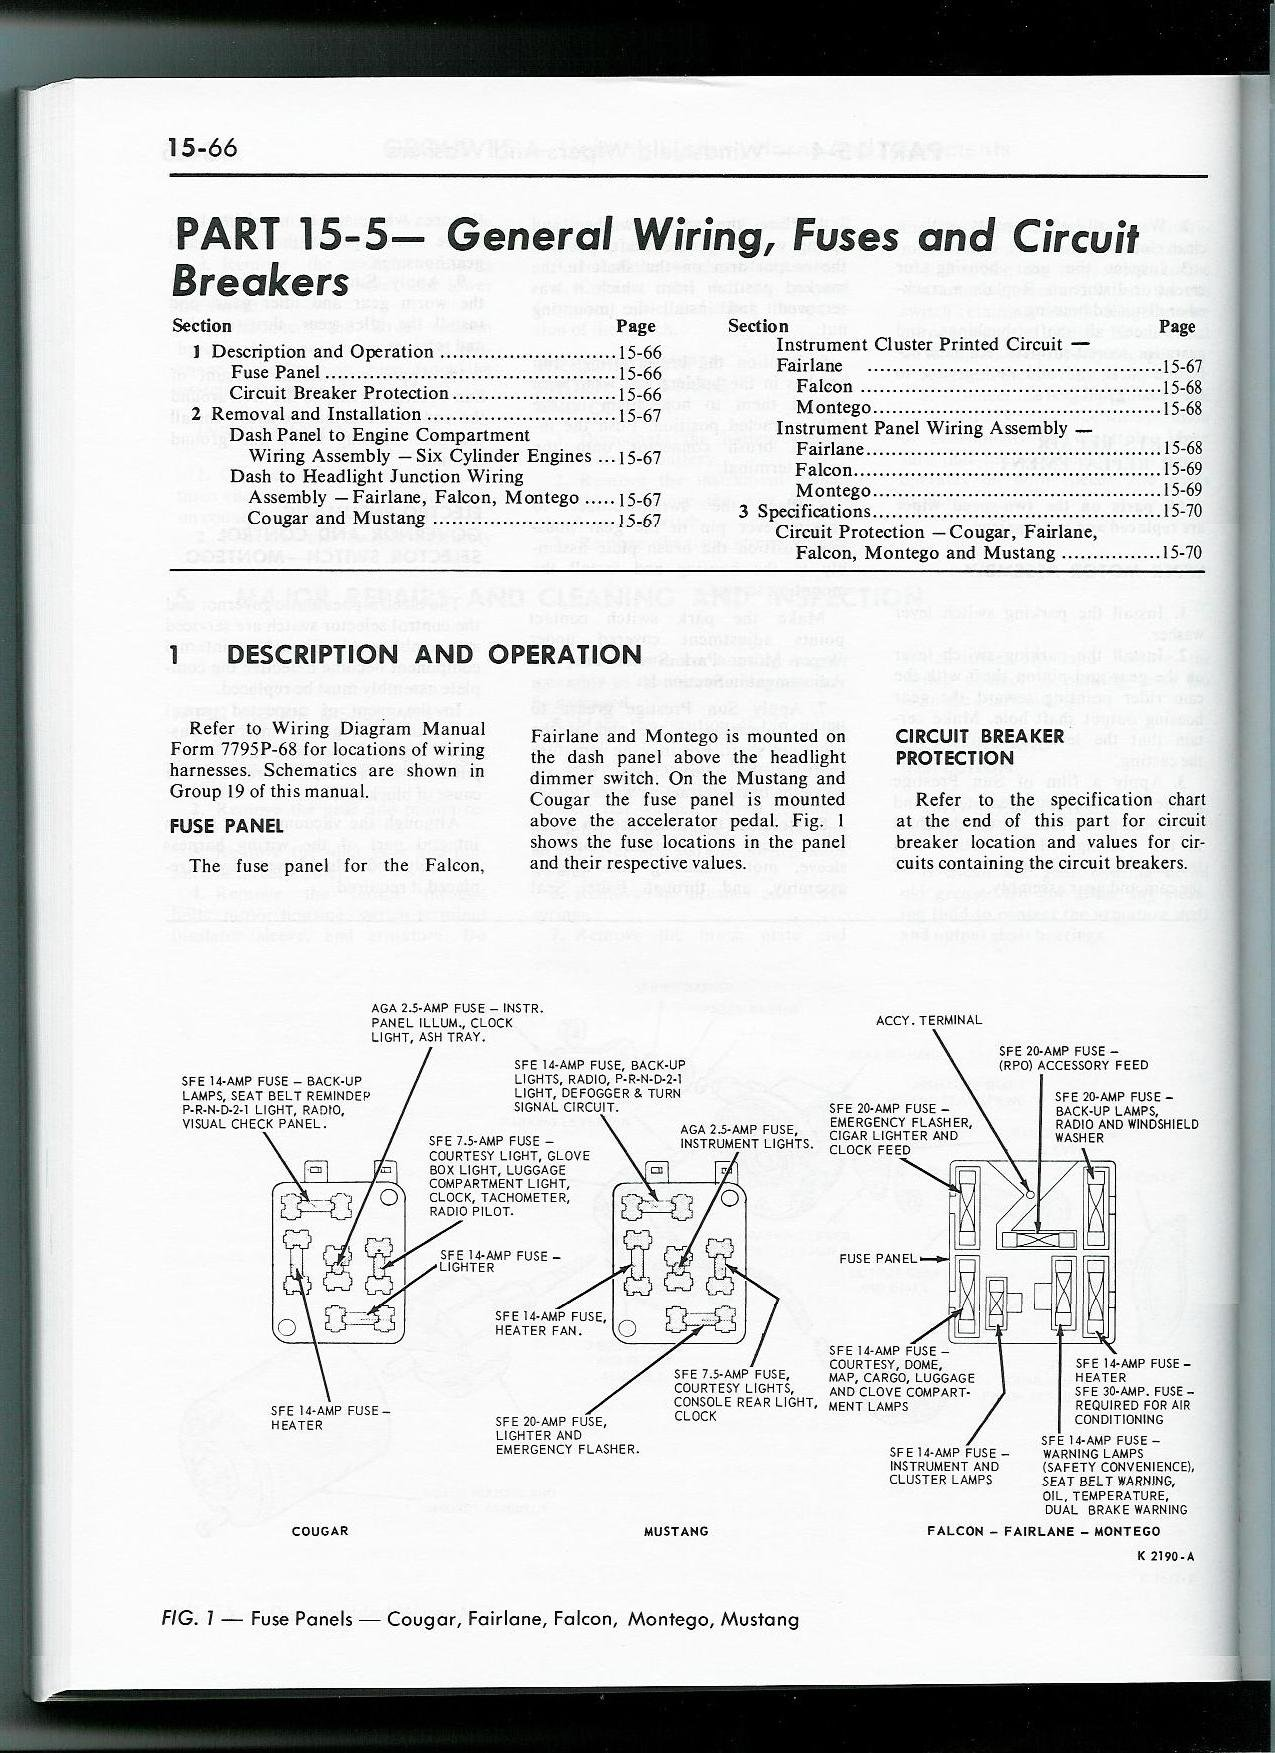 hight resolution of 1966 mustang fuse box simple wiring diagram bmw 3 series fuse box 1965 mustang fuse panel